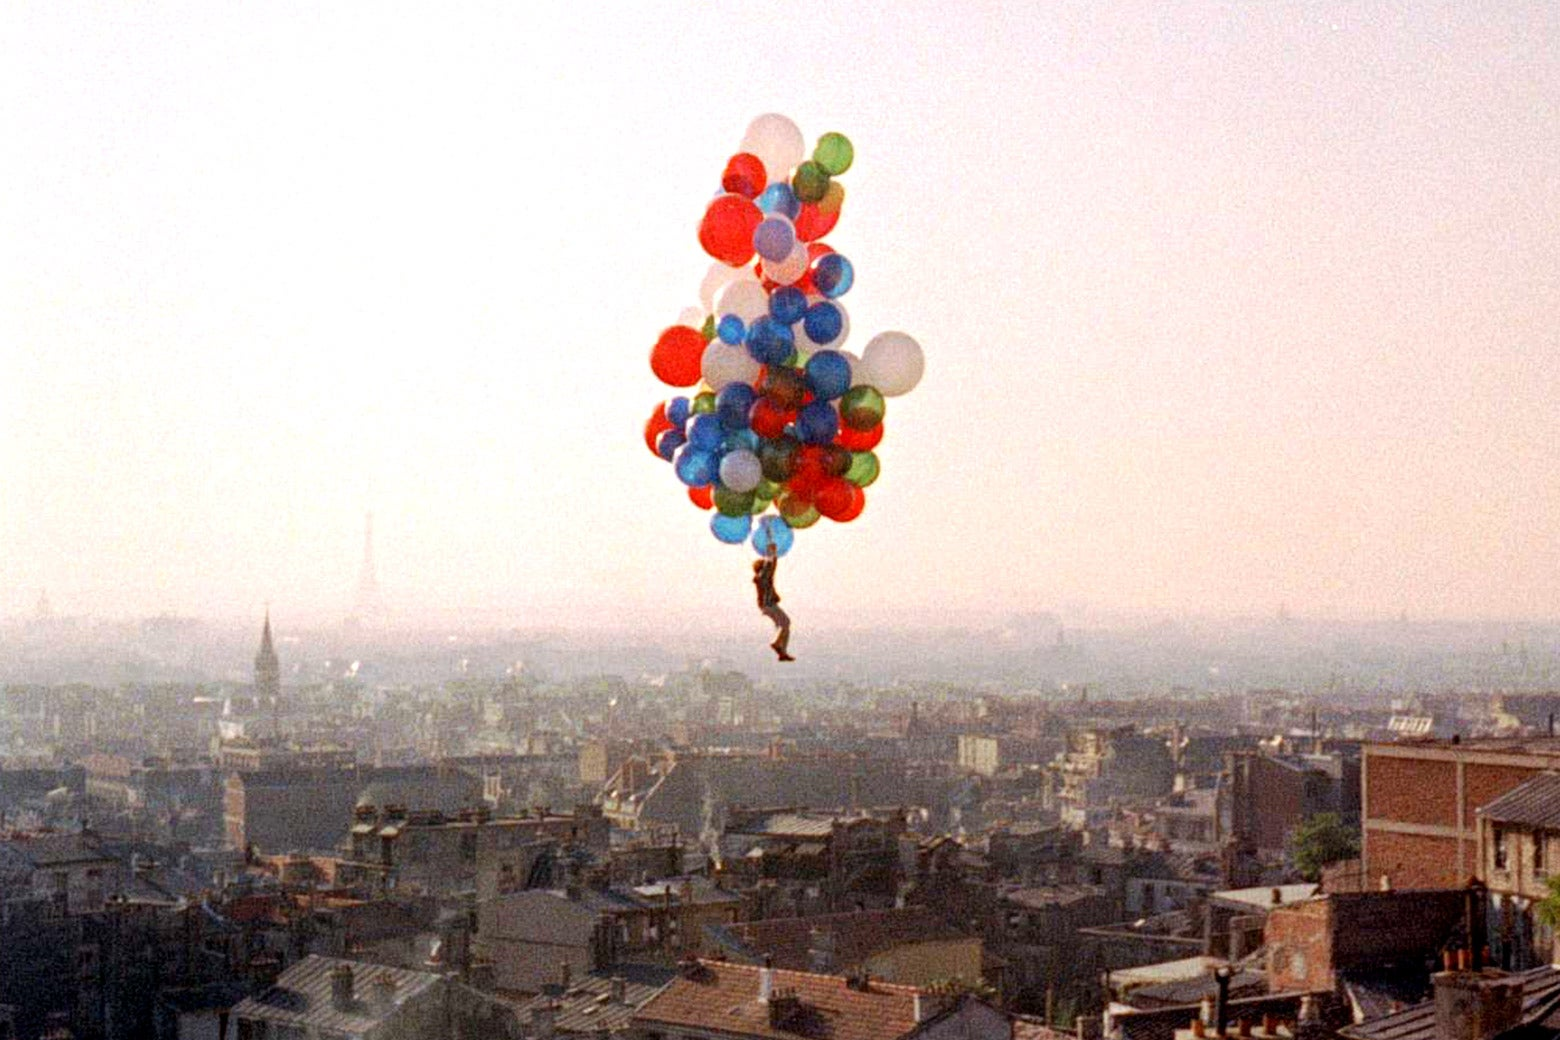 In a still from The Red Balloon, Pascal Lamorisse glides above a city, kept aloft only by the cloud of balloons he's holding onto.